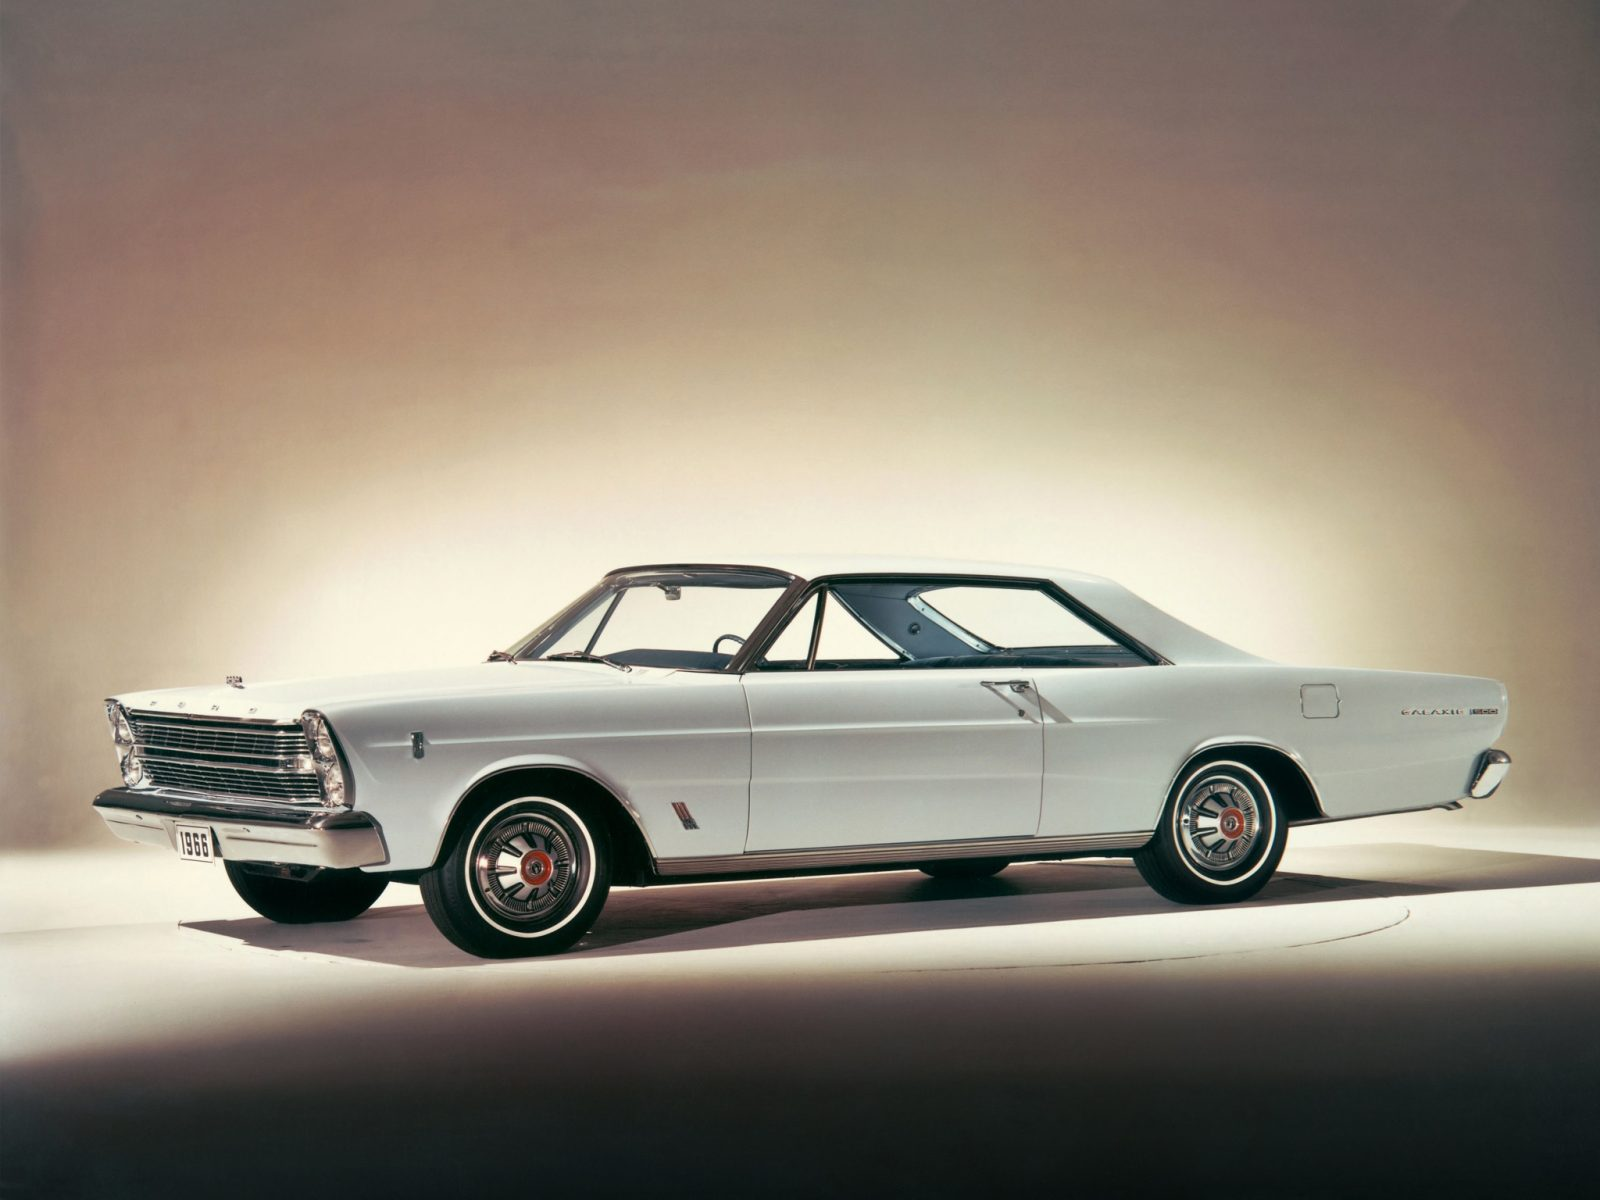 ford galaxie hardtop cope branco 1966 lateral